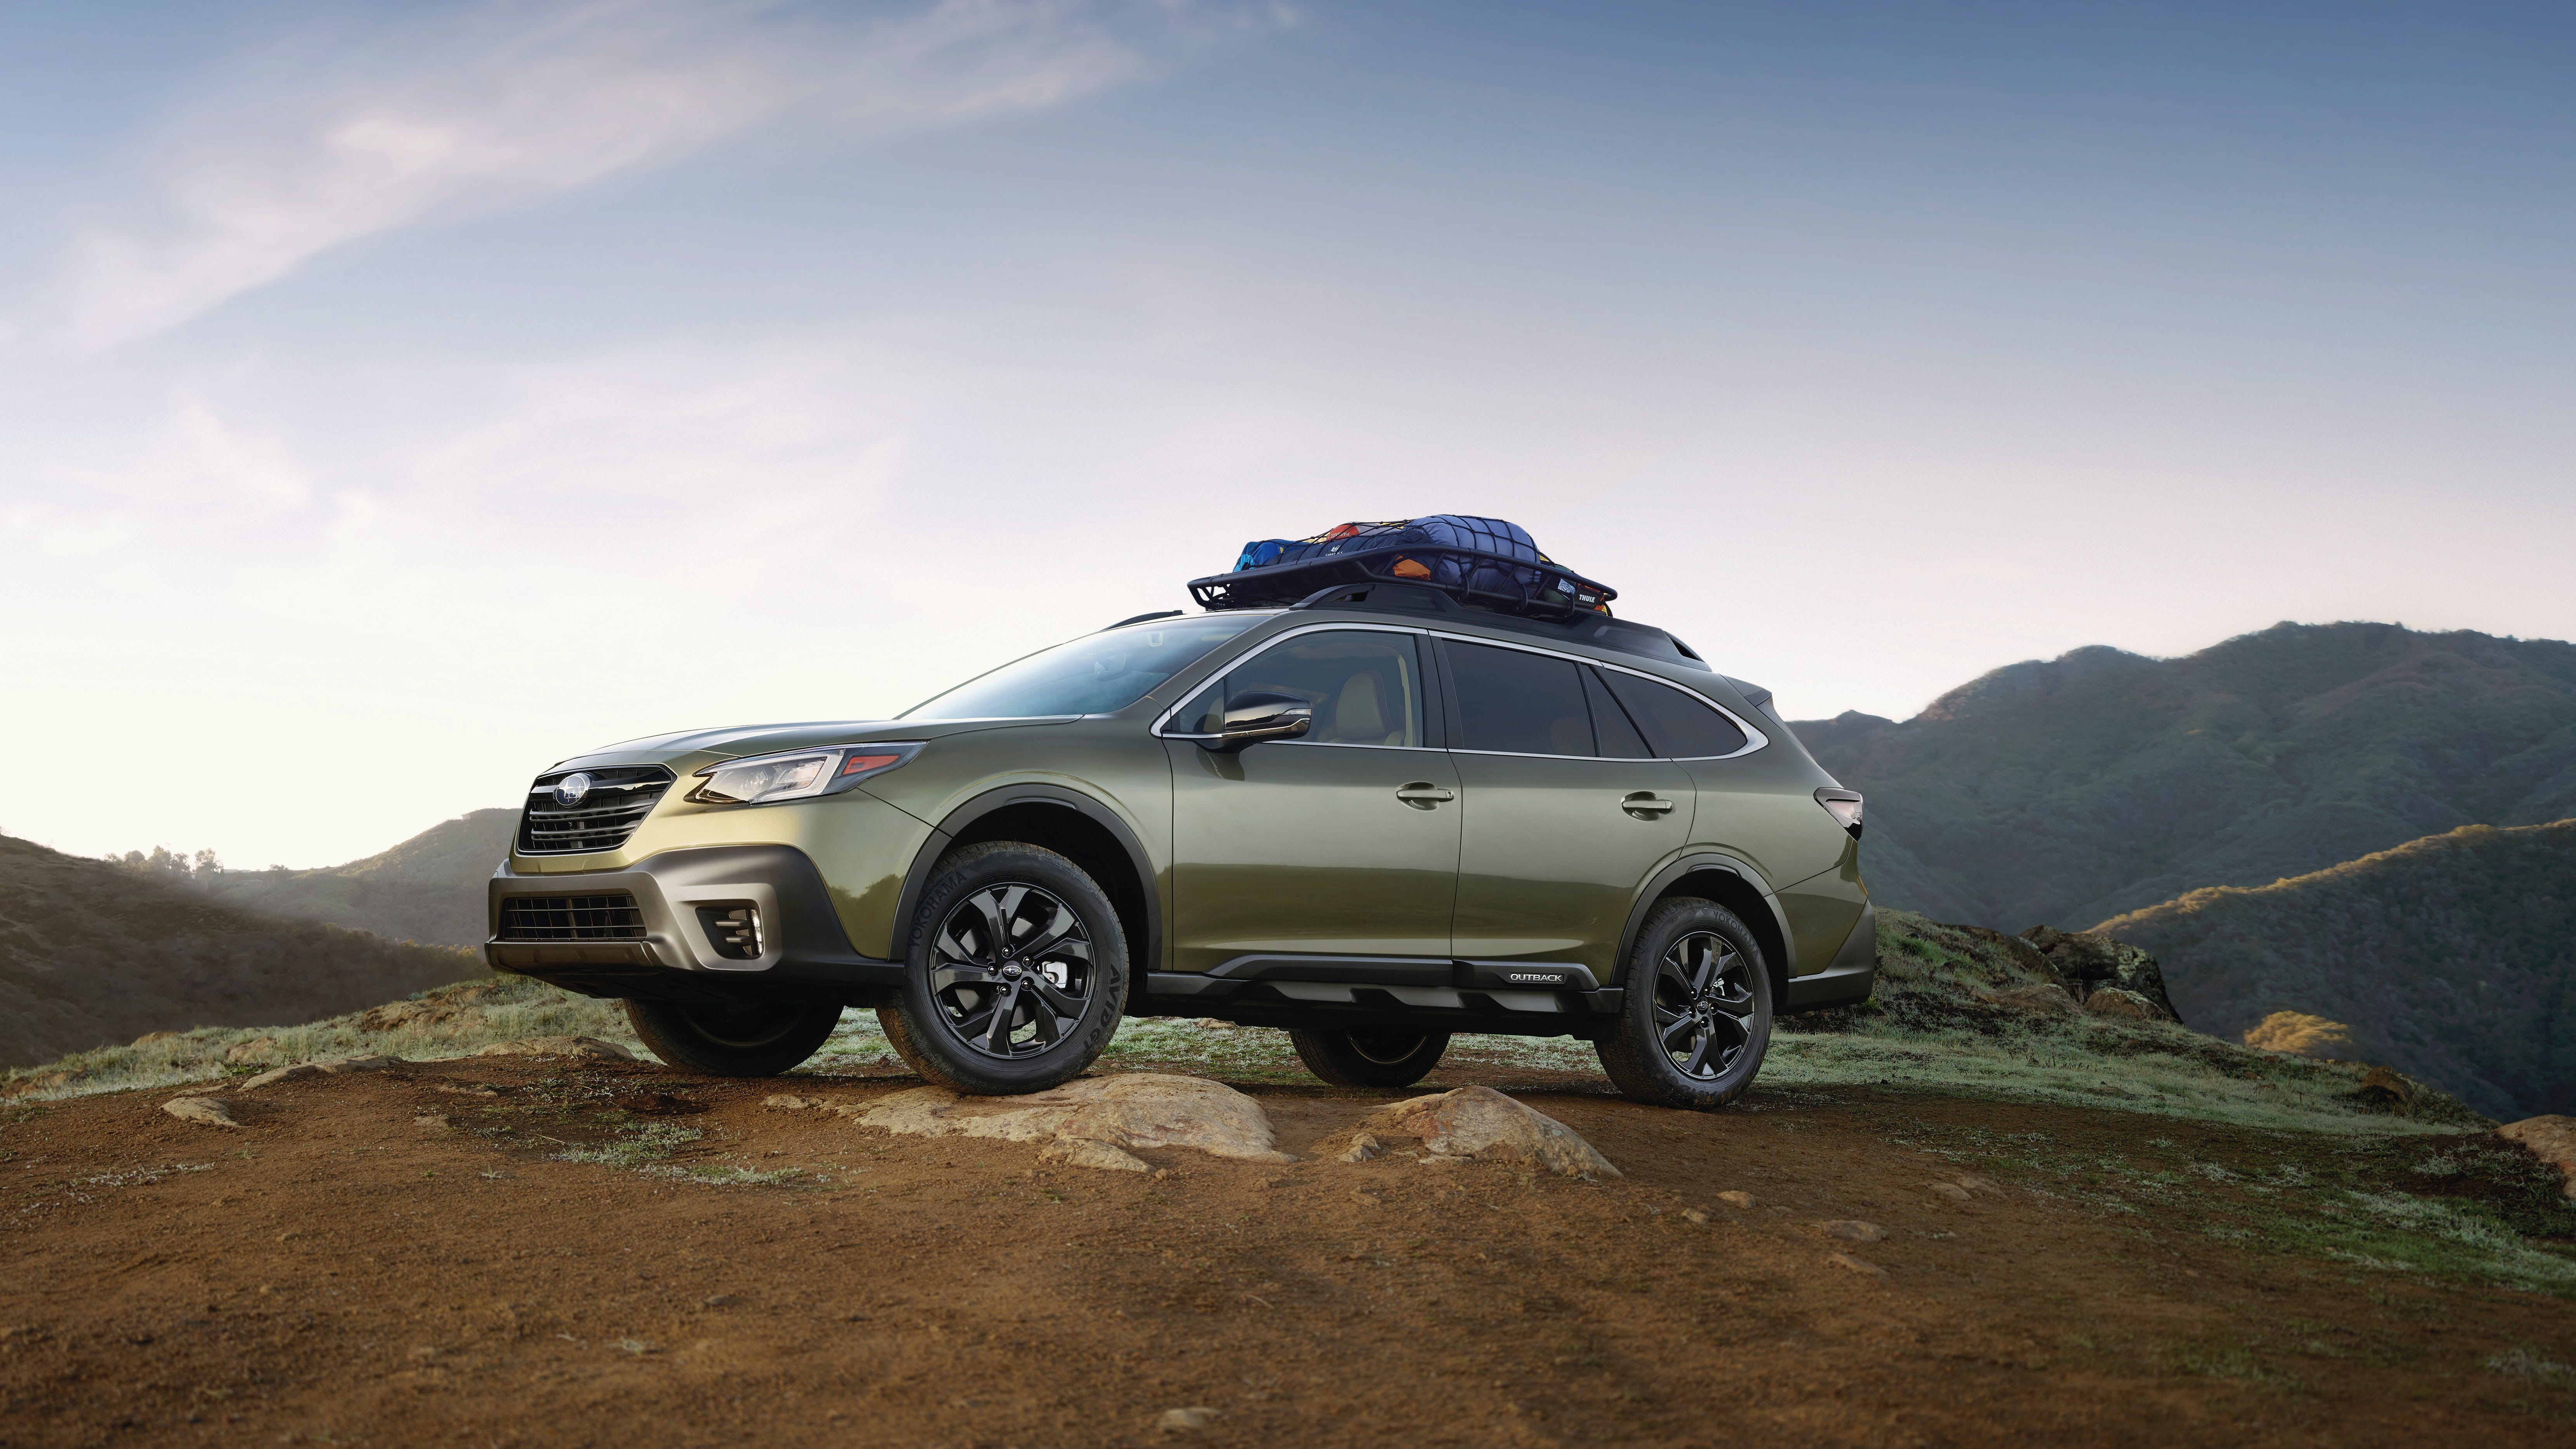 Subaru's redesigned 2020 Outback comes with in-car infrared camera and facial recognition technology to identify signs of driver fatigue.